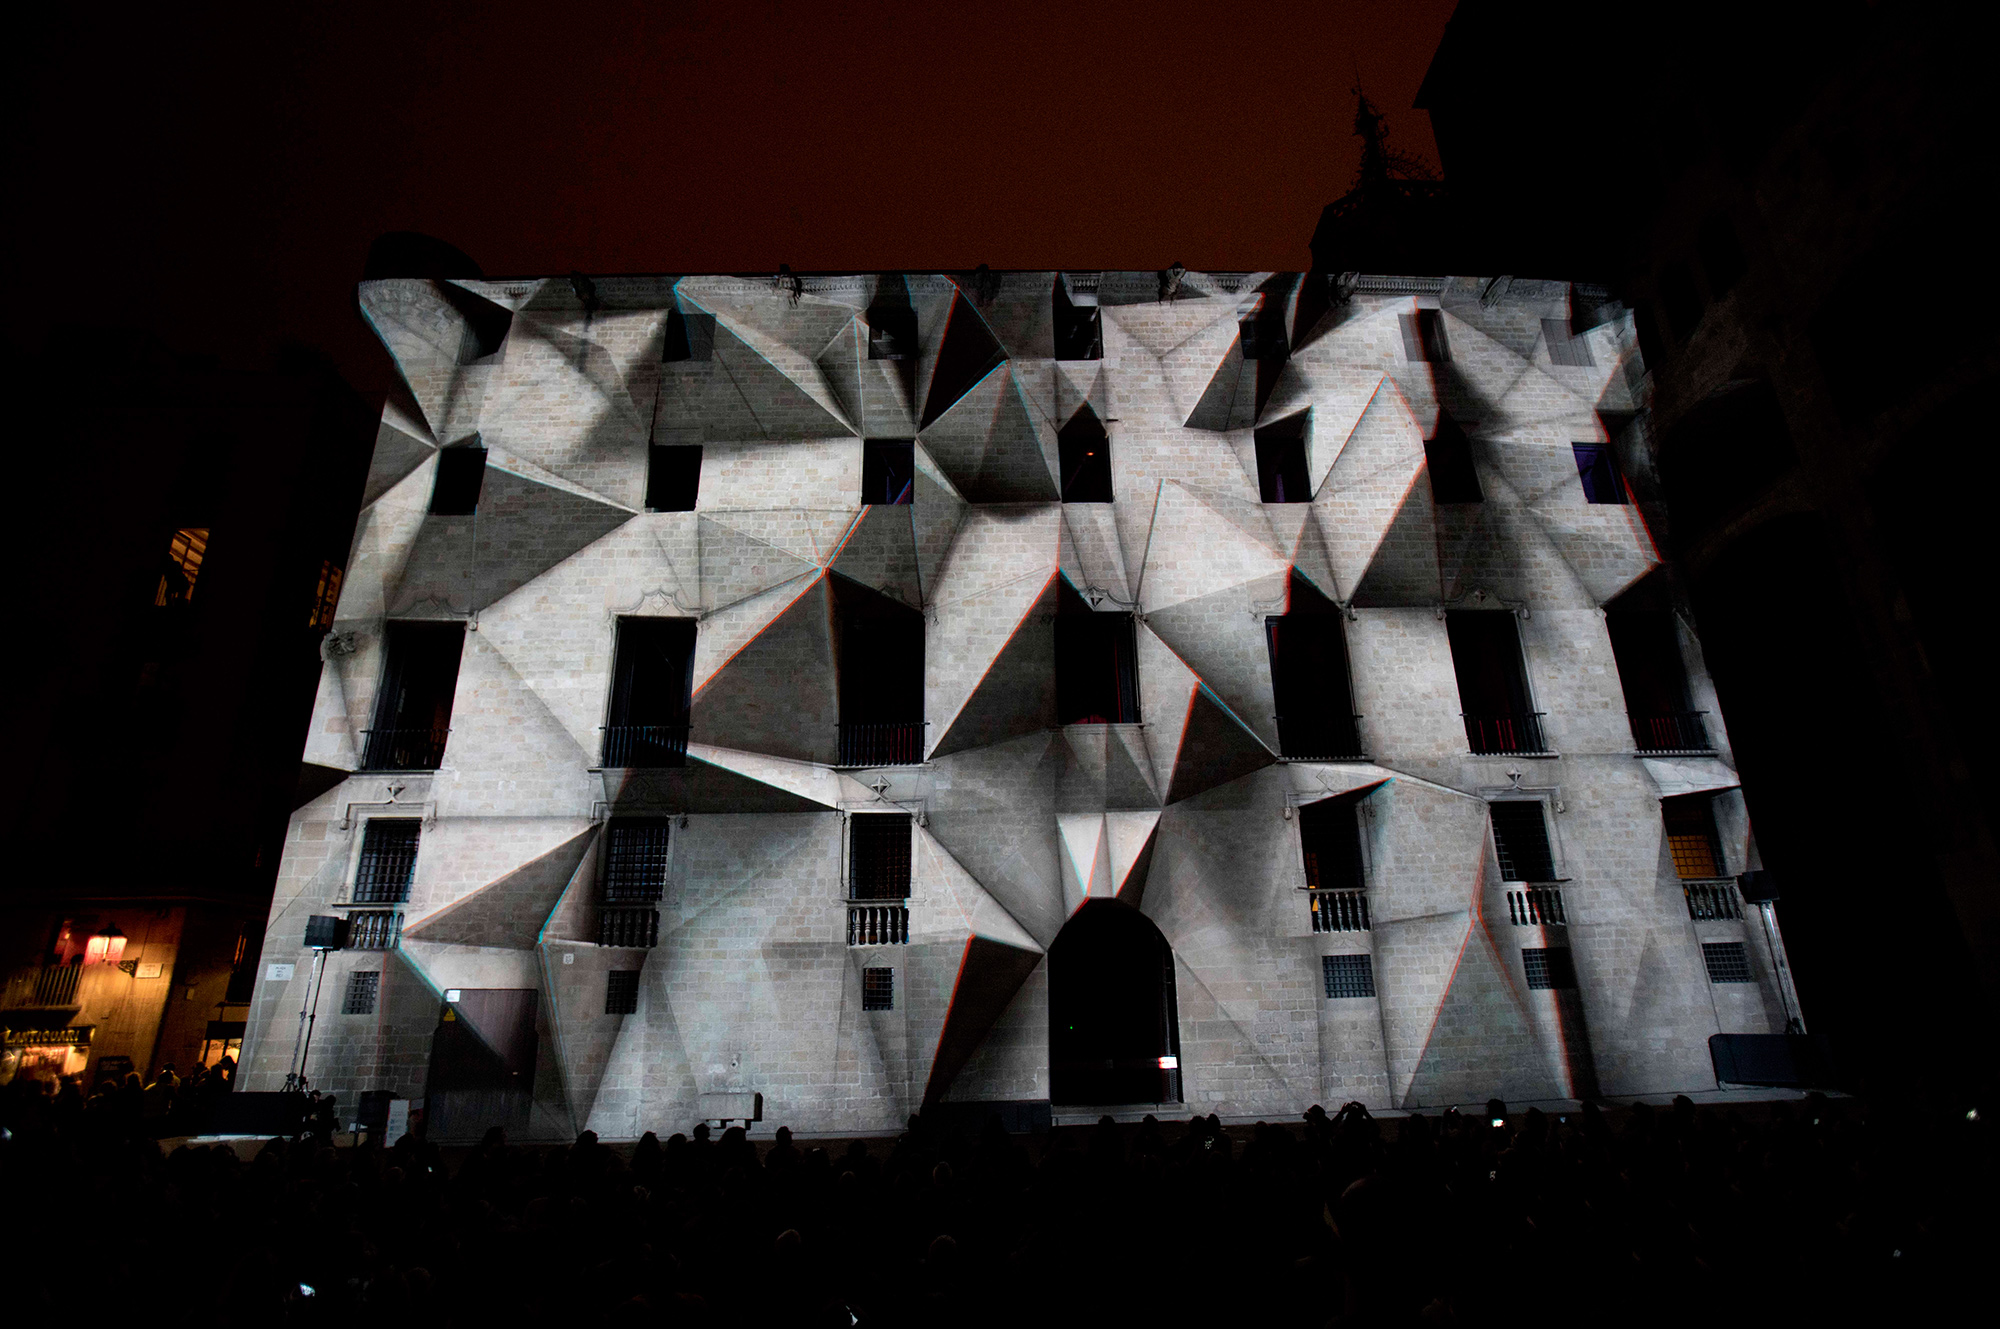 3D projection mapping for Llum Bcn Festival in Barcelona.